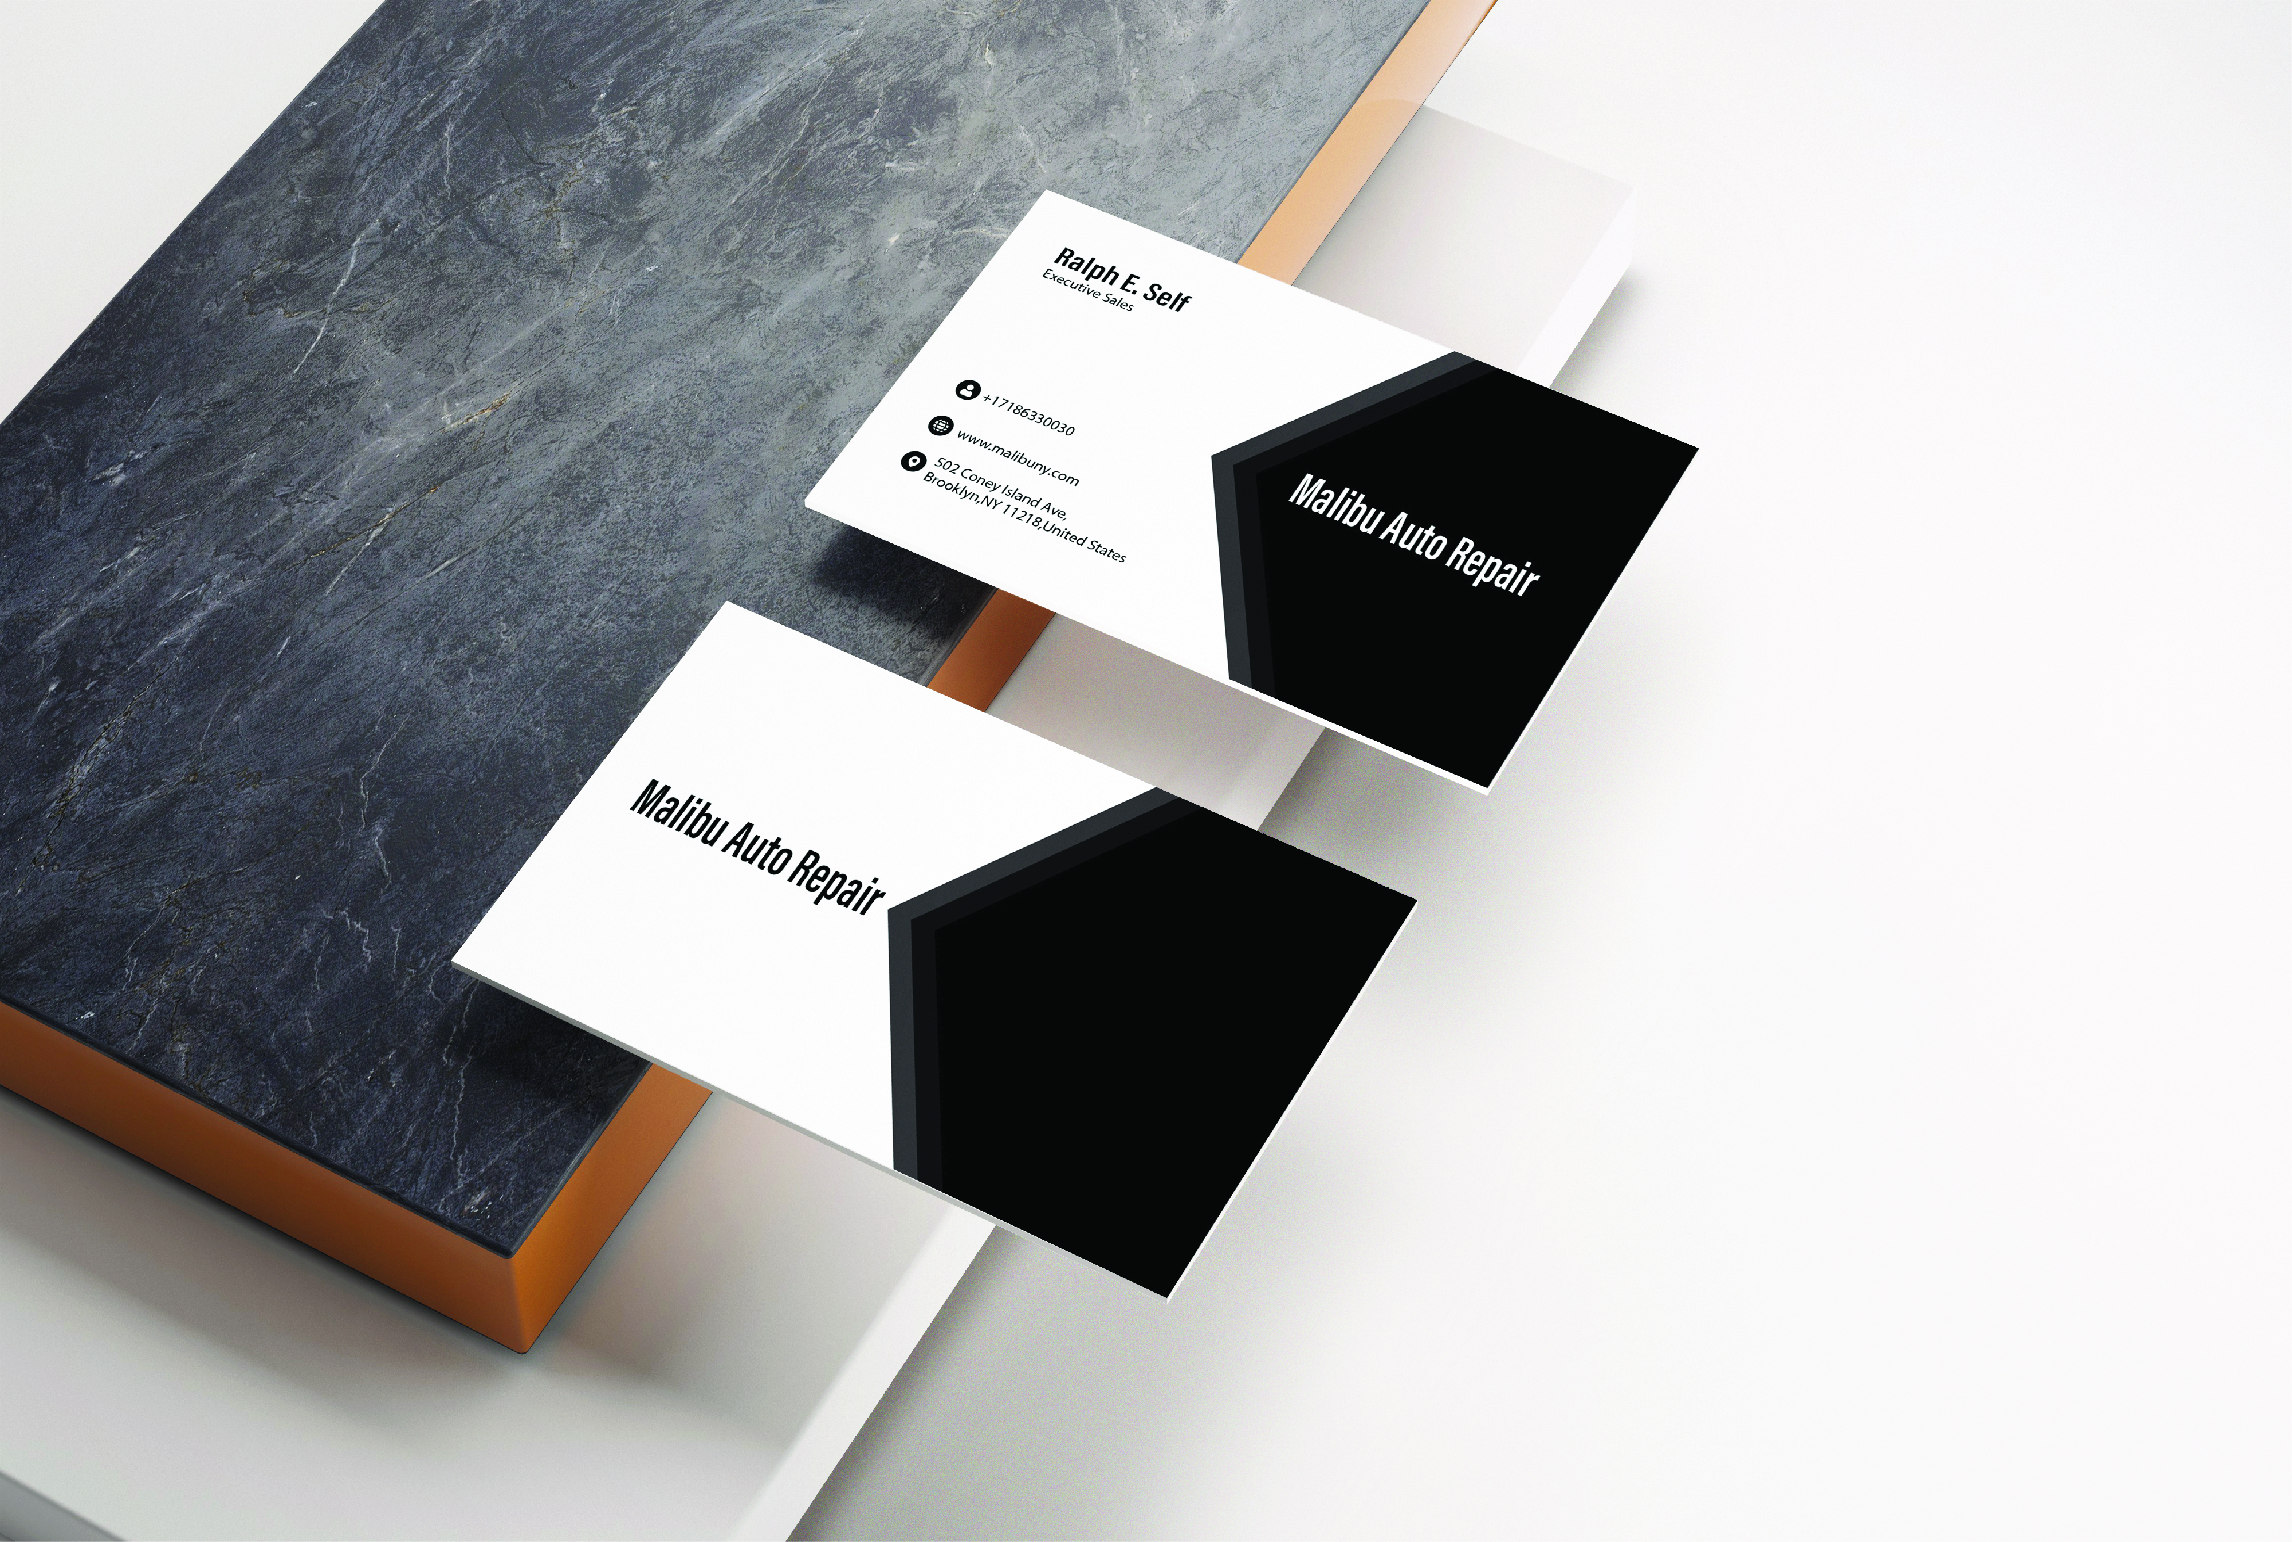 I will make professional and awesome unique minimalist business cards for you